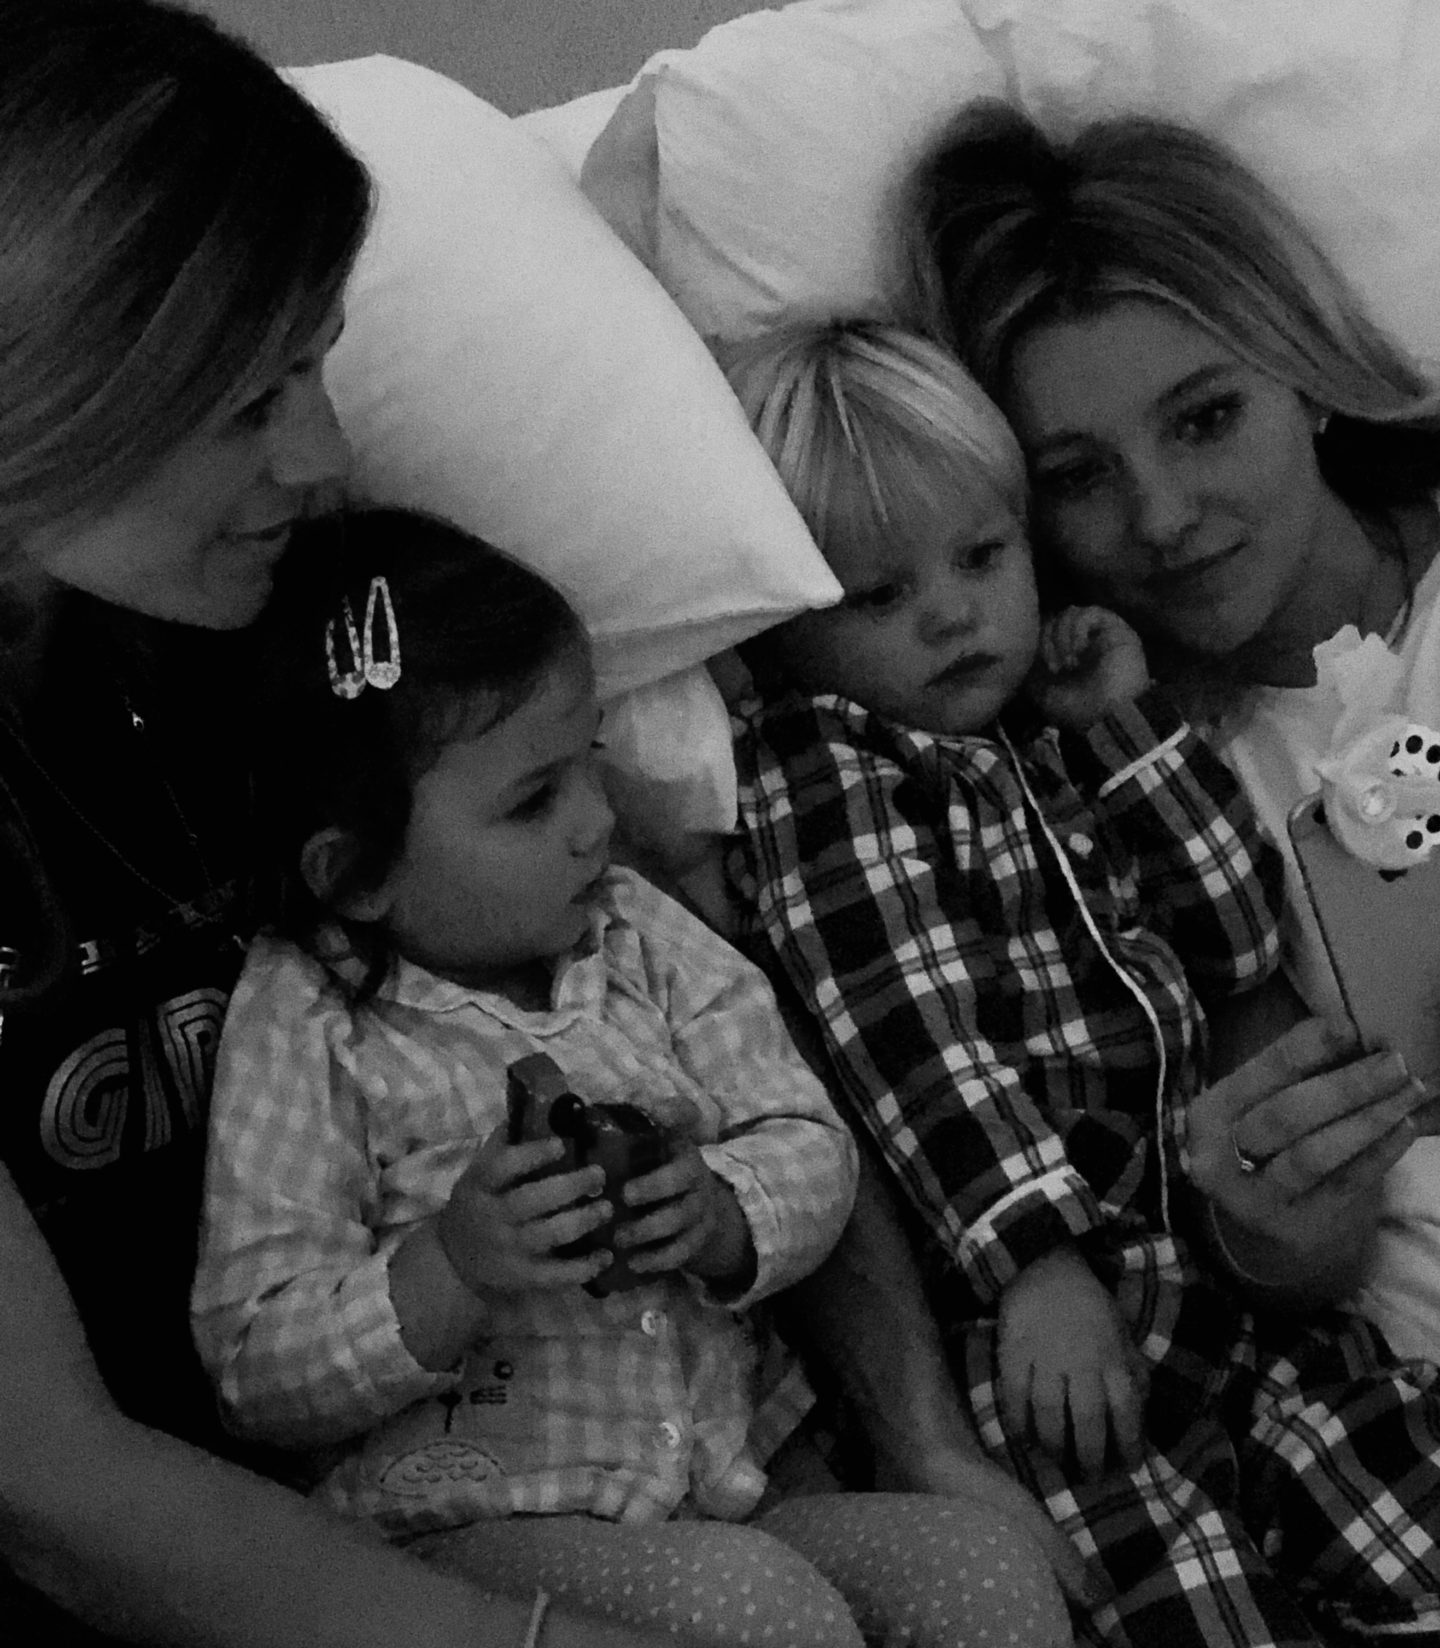 Magical bedtime stories with Moonlite